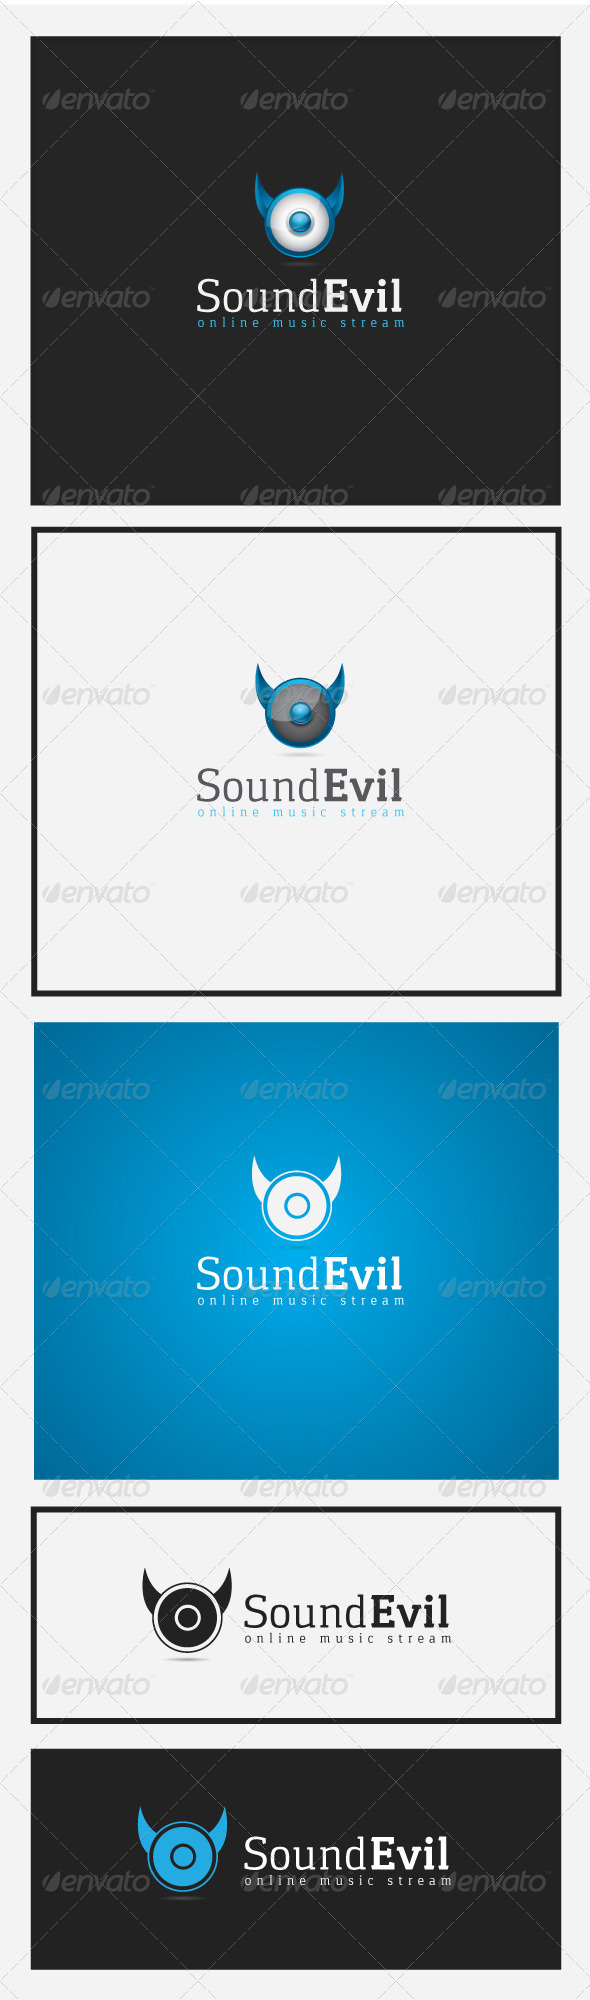 Sound Evil Logo - Vector Abstract